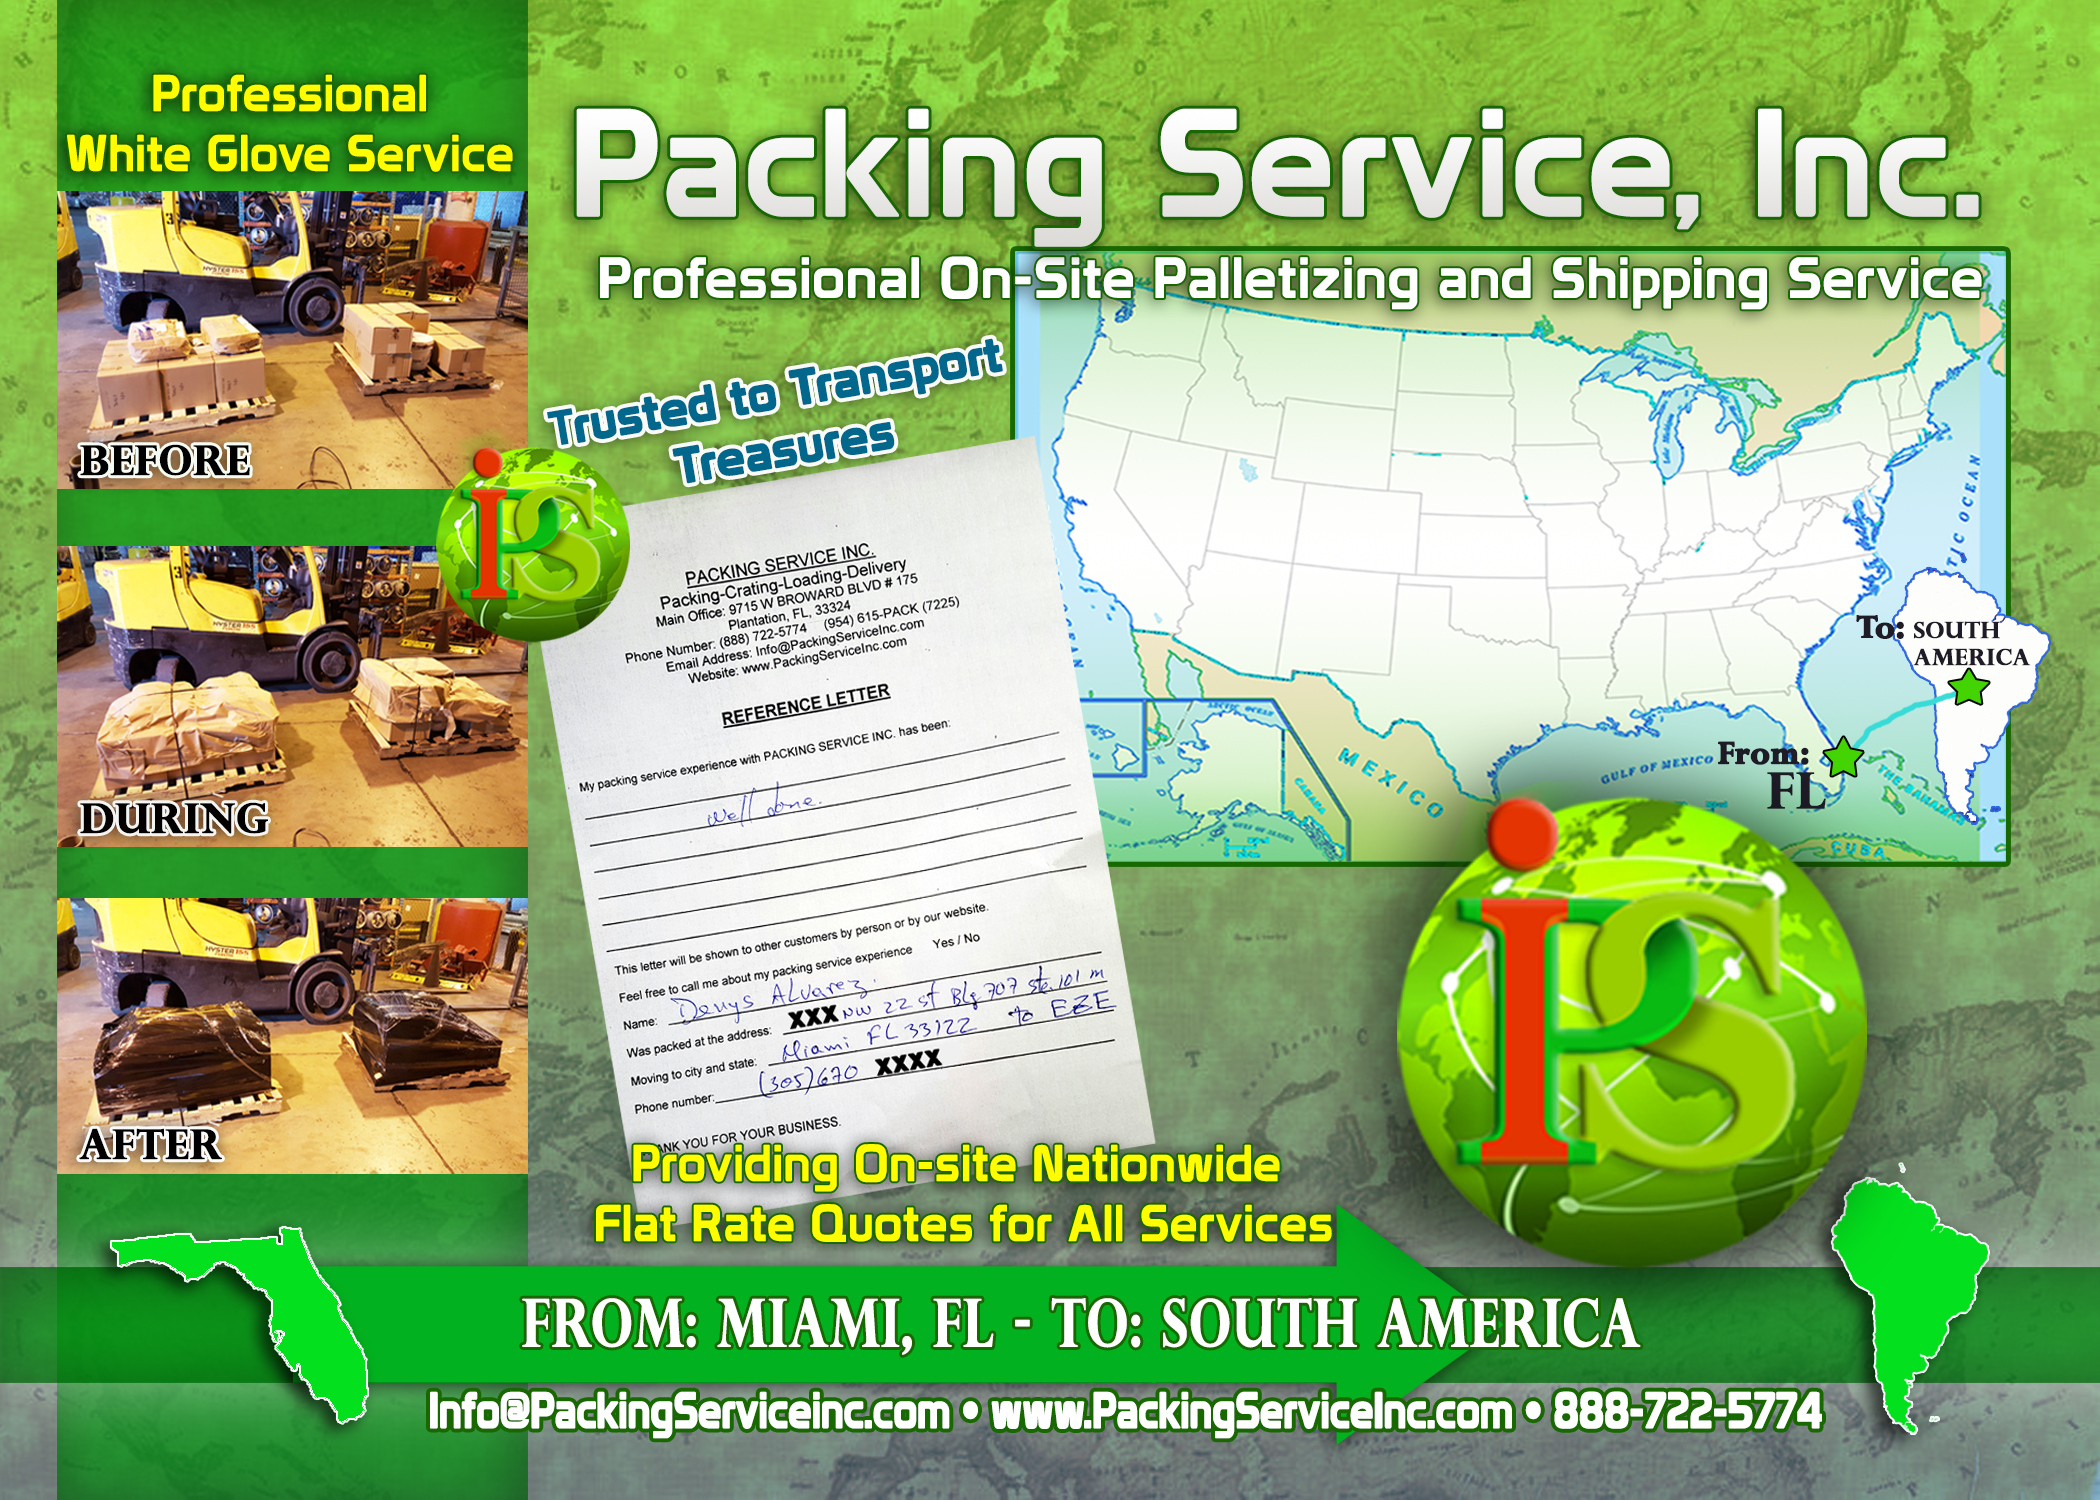 Palletizing Boxes and Shipping Services from Miami, FL to South America with Packing Service, Inc. A